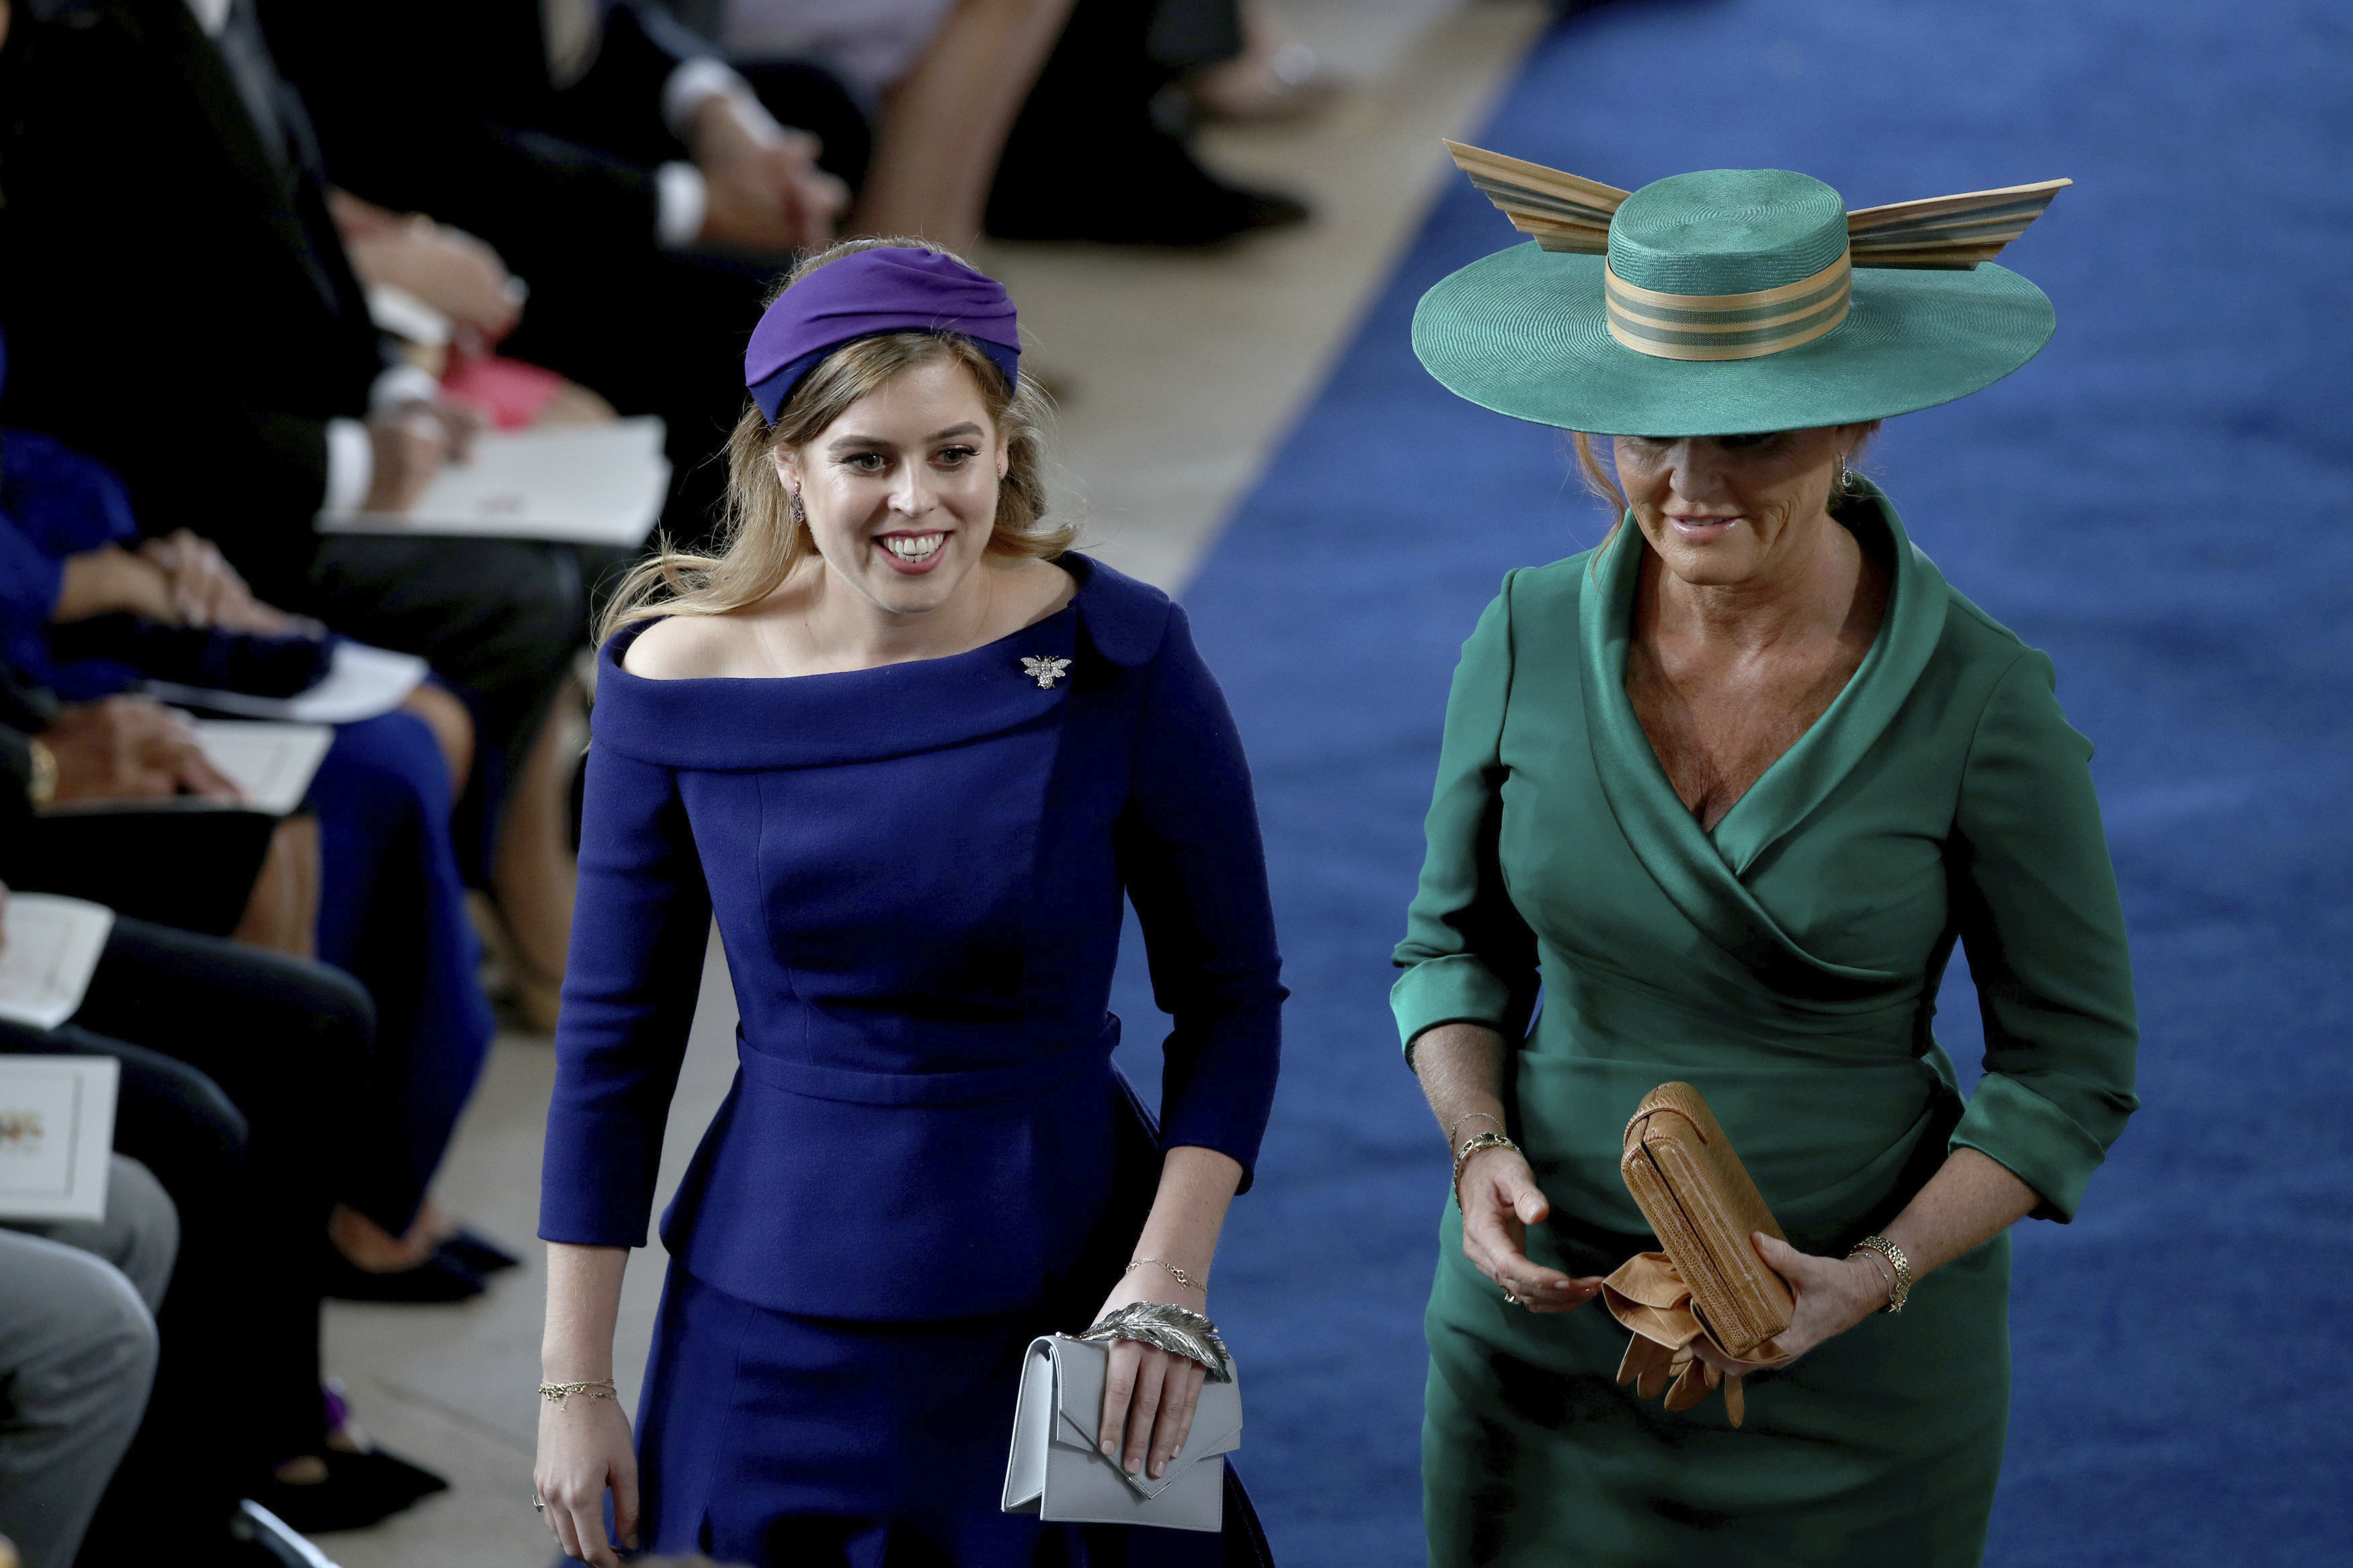 <div class='meta'><div class='origin-logo' data-origin='none'></div><span class='caption-text' data-credit='Yui Mok, Pool via AP'>Sarah Ferguson and Princess Beatrice arrive for the wedding of Princess Eugenie of York and Jack Brooksbank in St George's Chapel.</span></div>